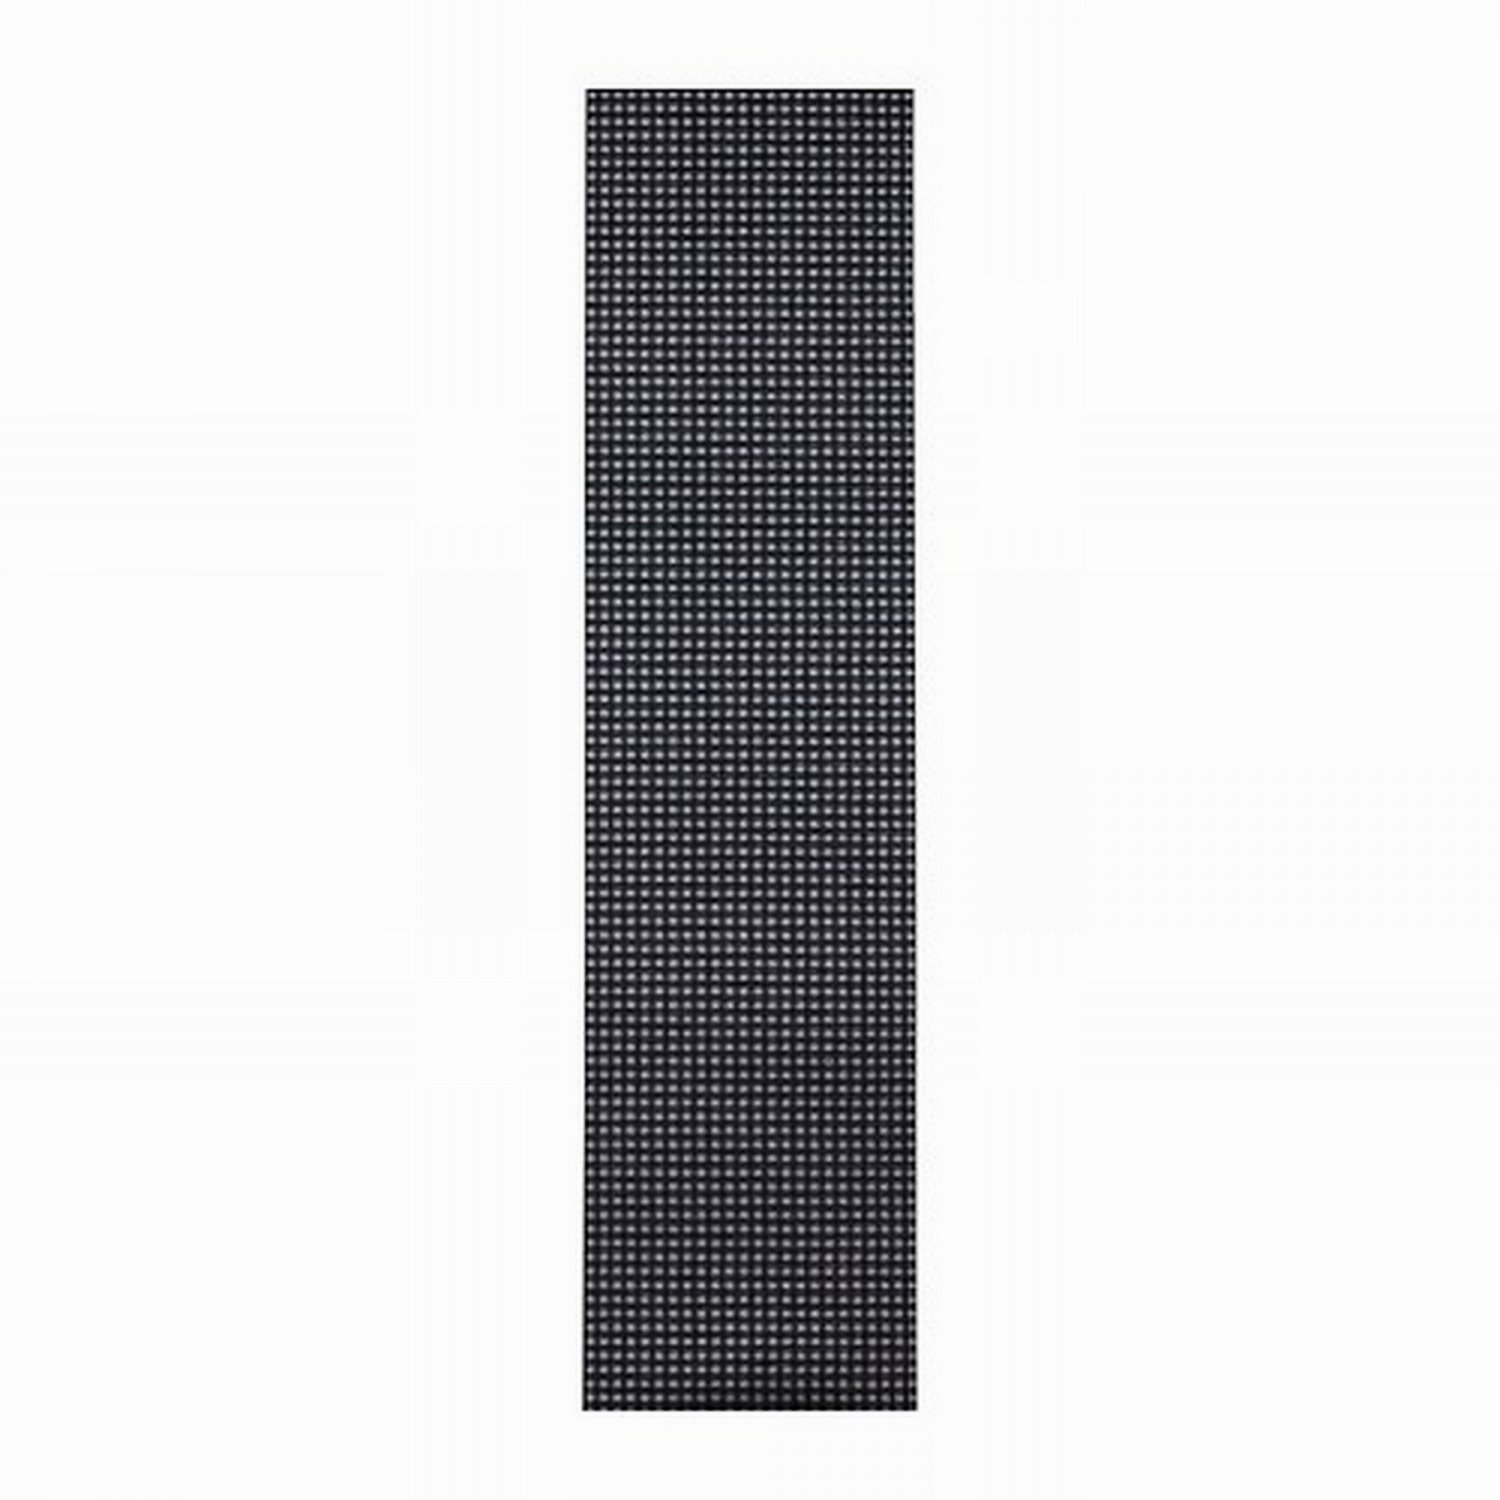 ikea ingamaj curtain window panel black screen room divider